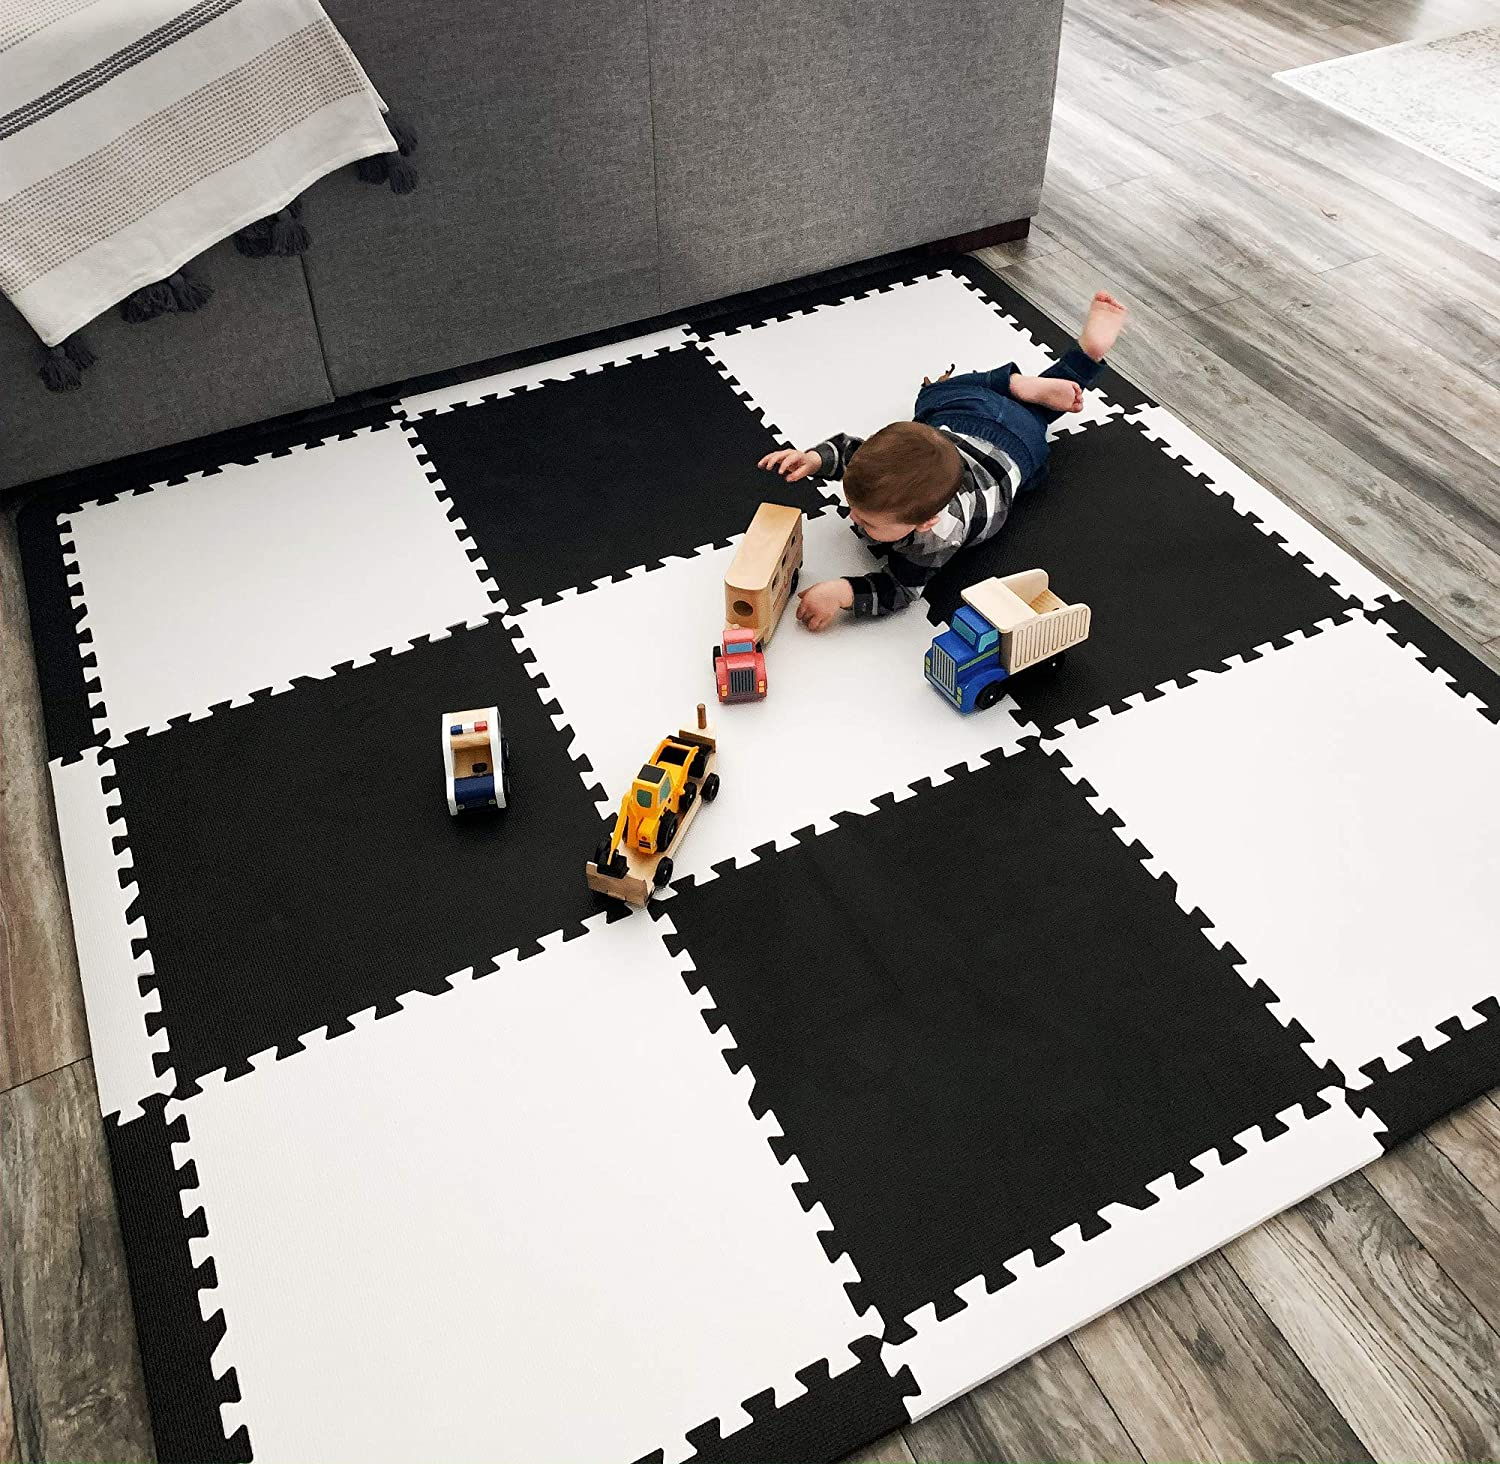 """Baby Play Mat Tiles Extra Large Thick Foam Floor Puzzle Mat Interlocking Playmat for Infants Toddlers Kids Babies Crawling Tummy Time 74"""" x 74"""" (Black/White)"""